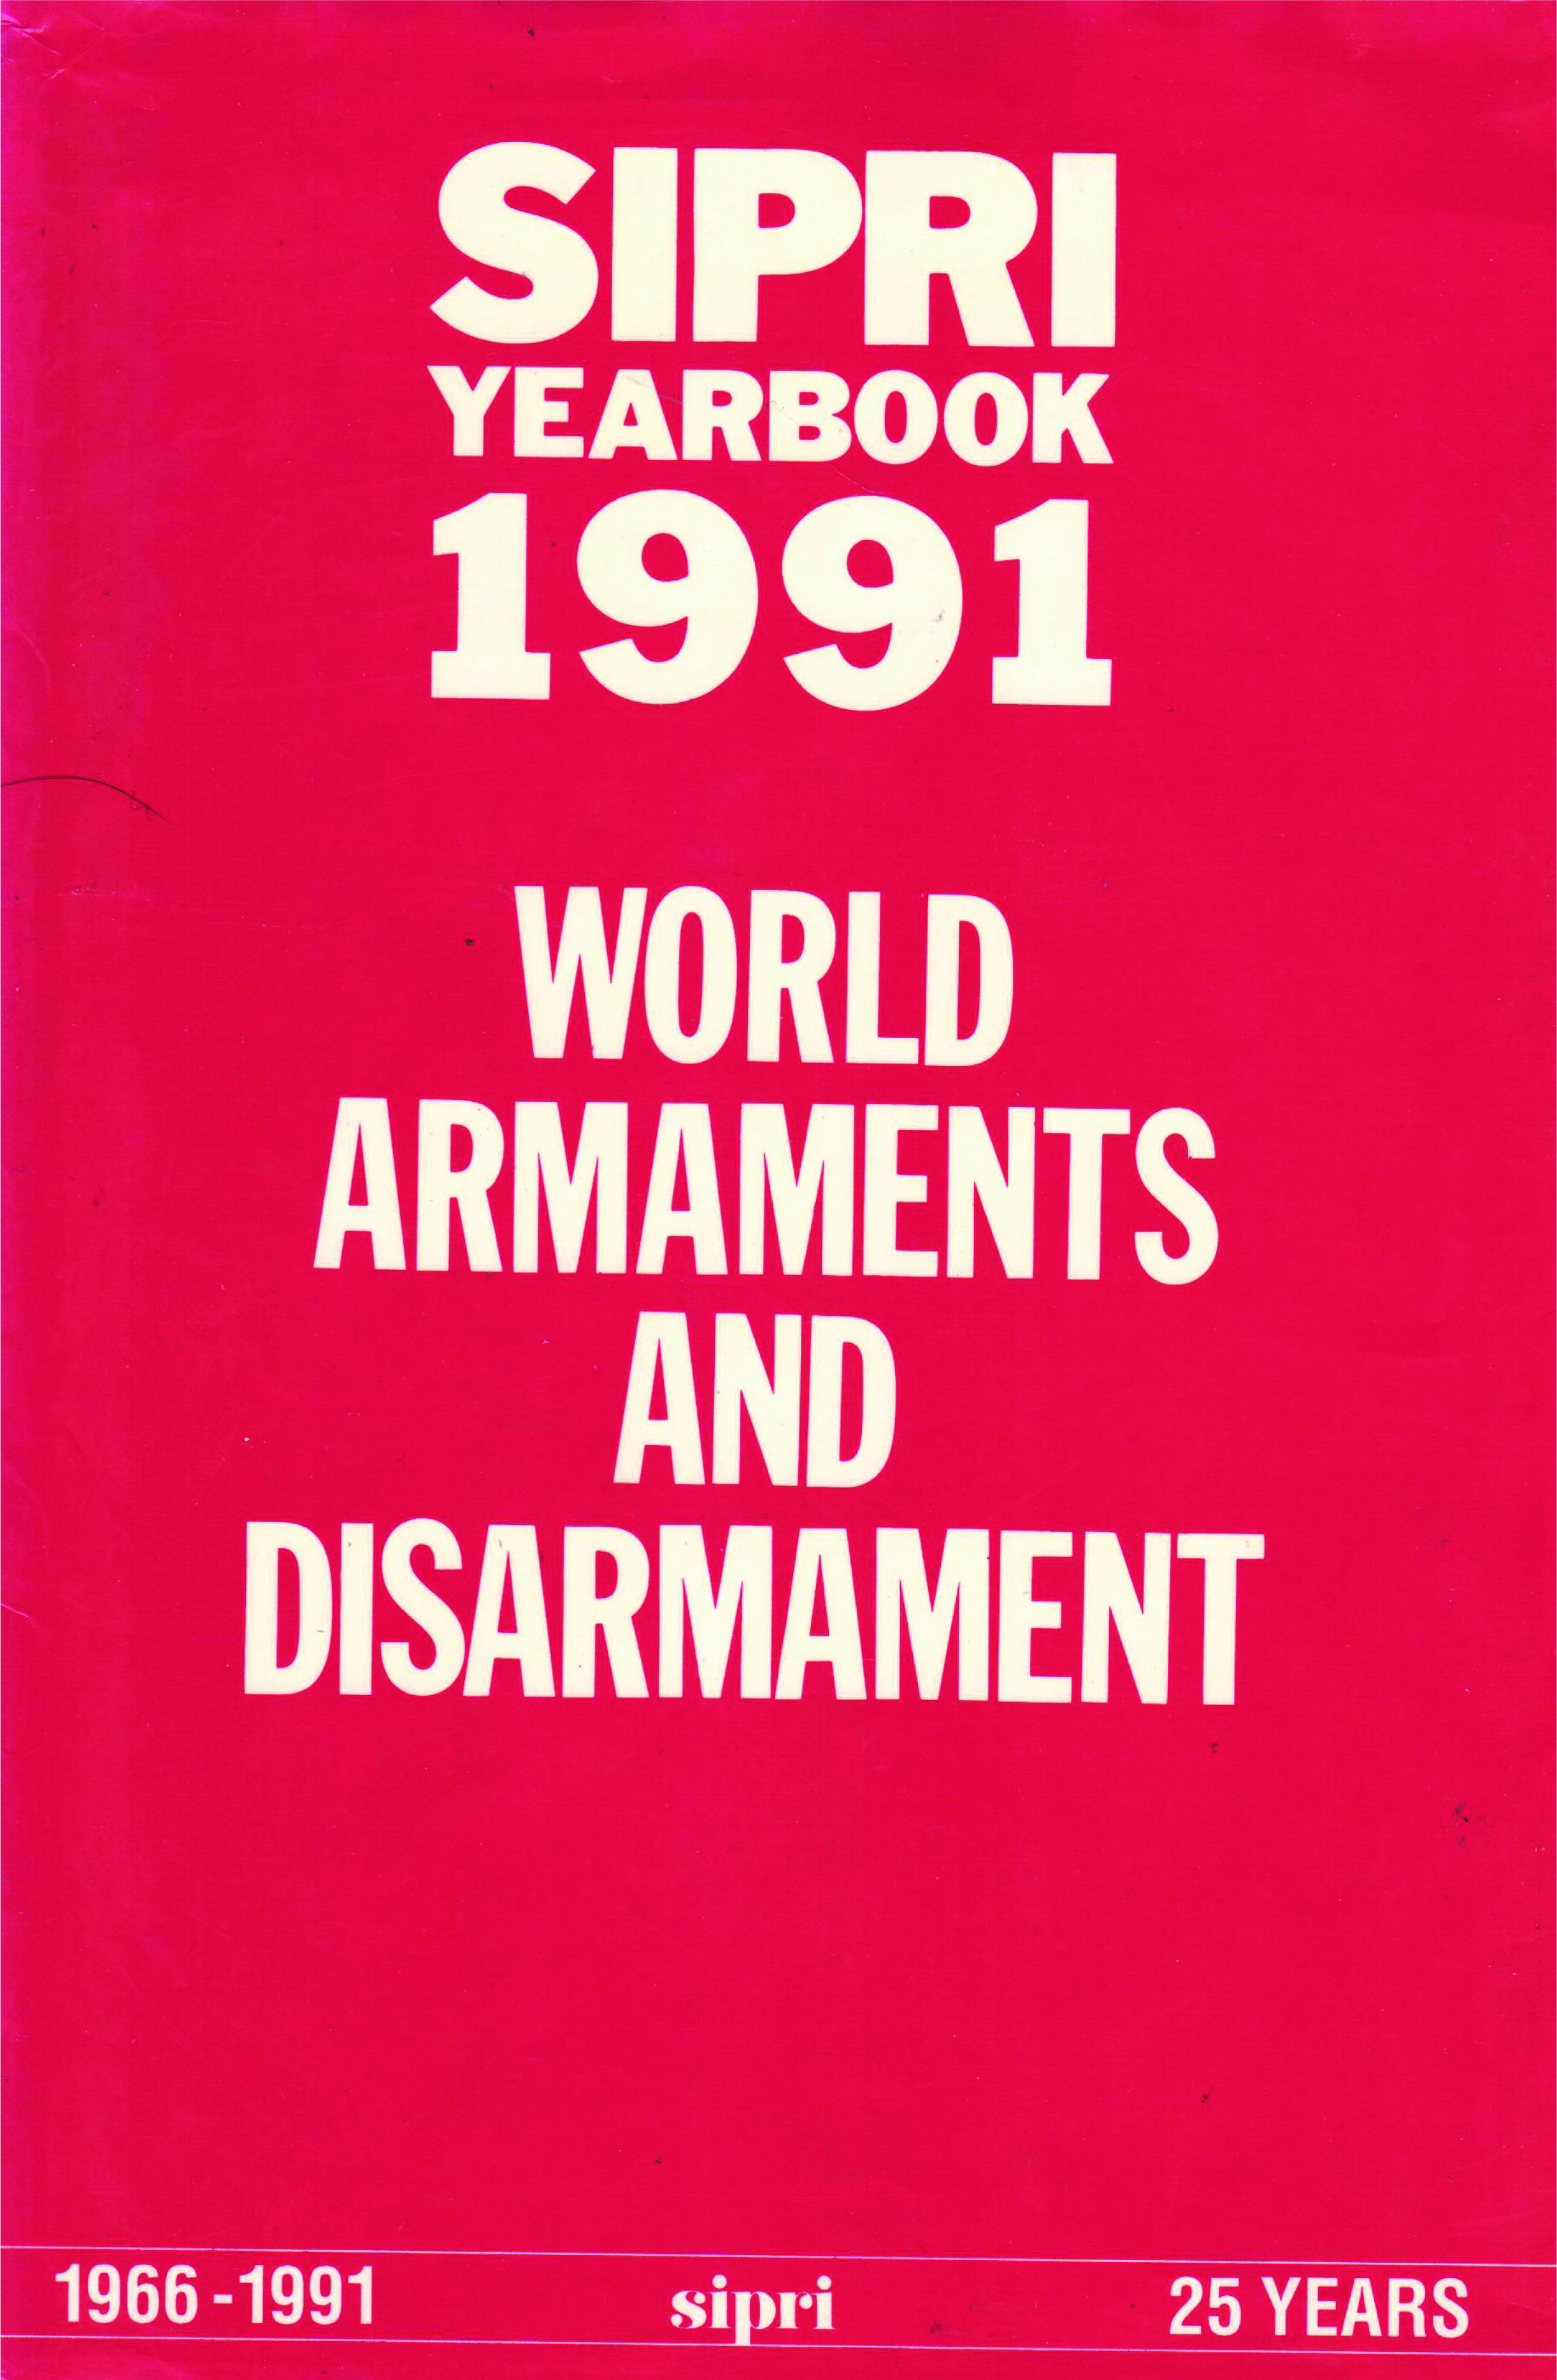 SIPRI yearbook 1991 cover